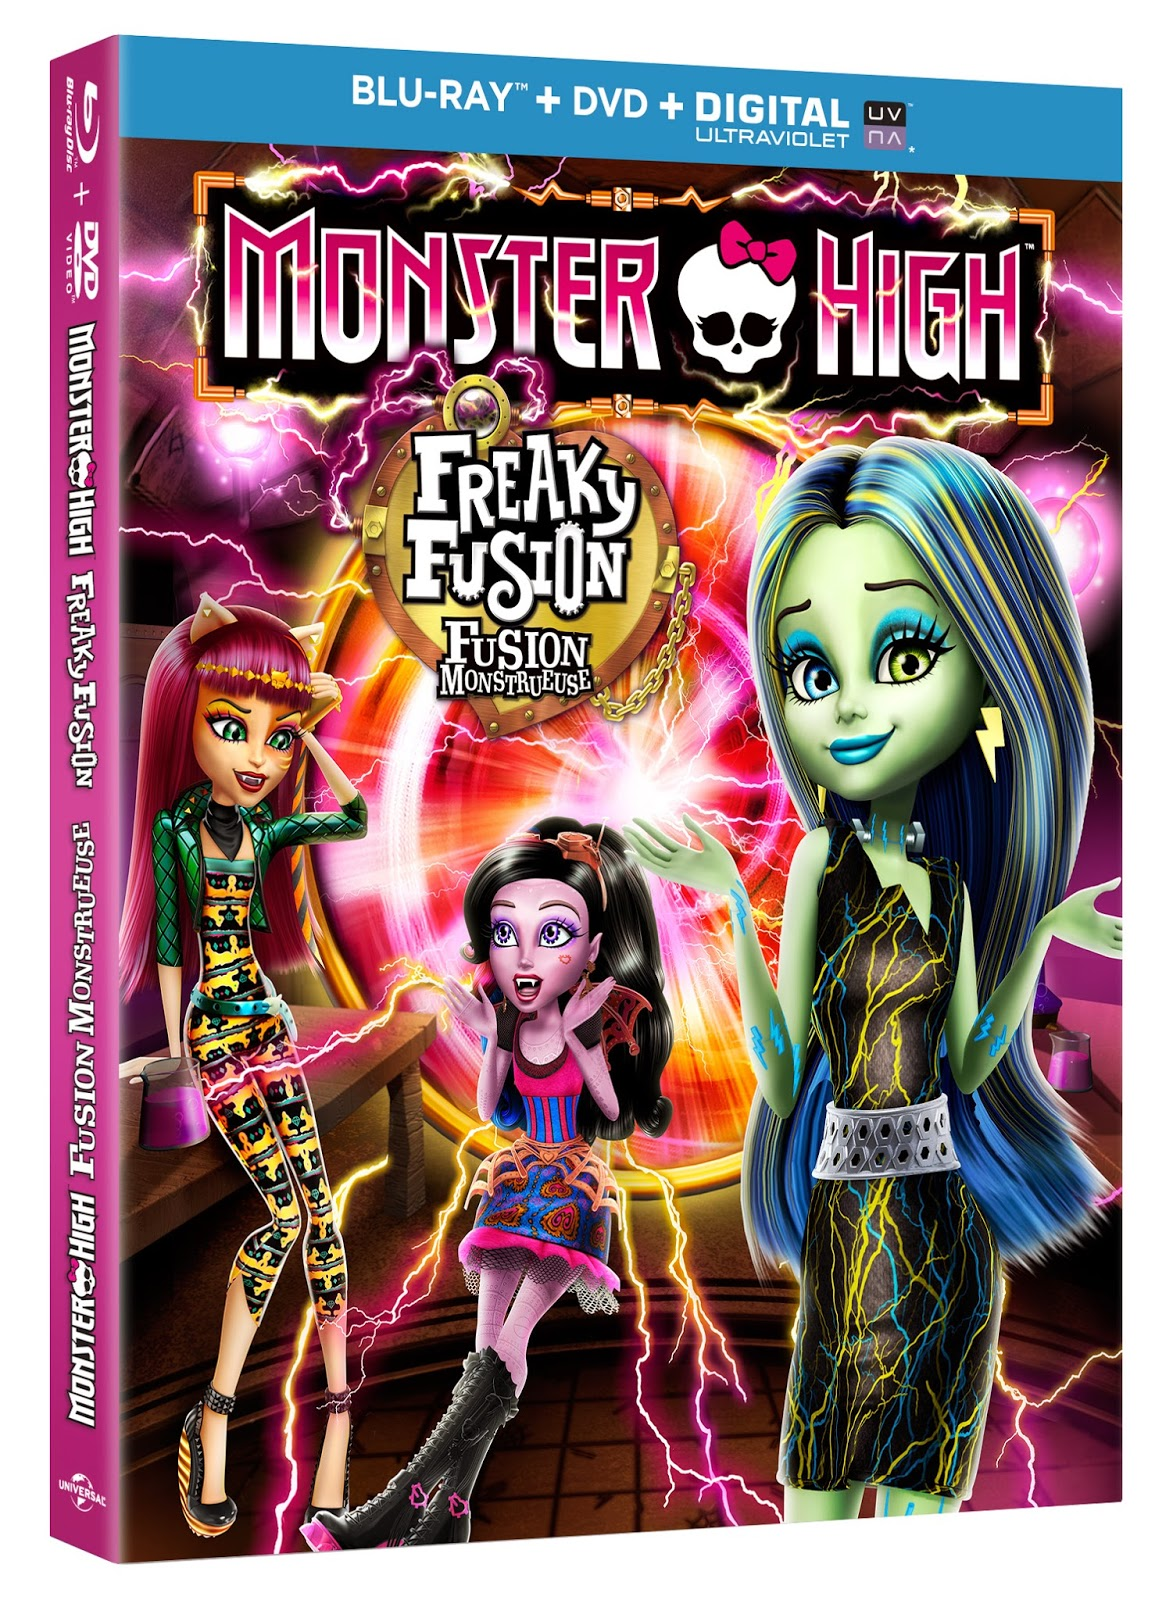 Monster High Freak Fusion Blu-ray Review